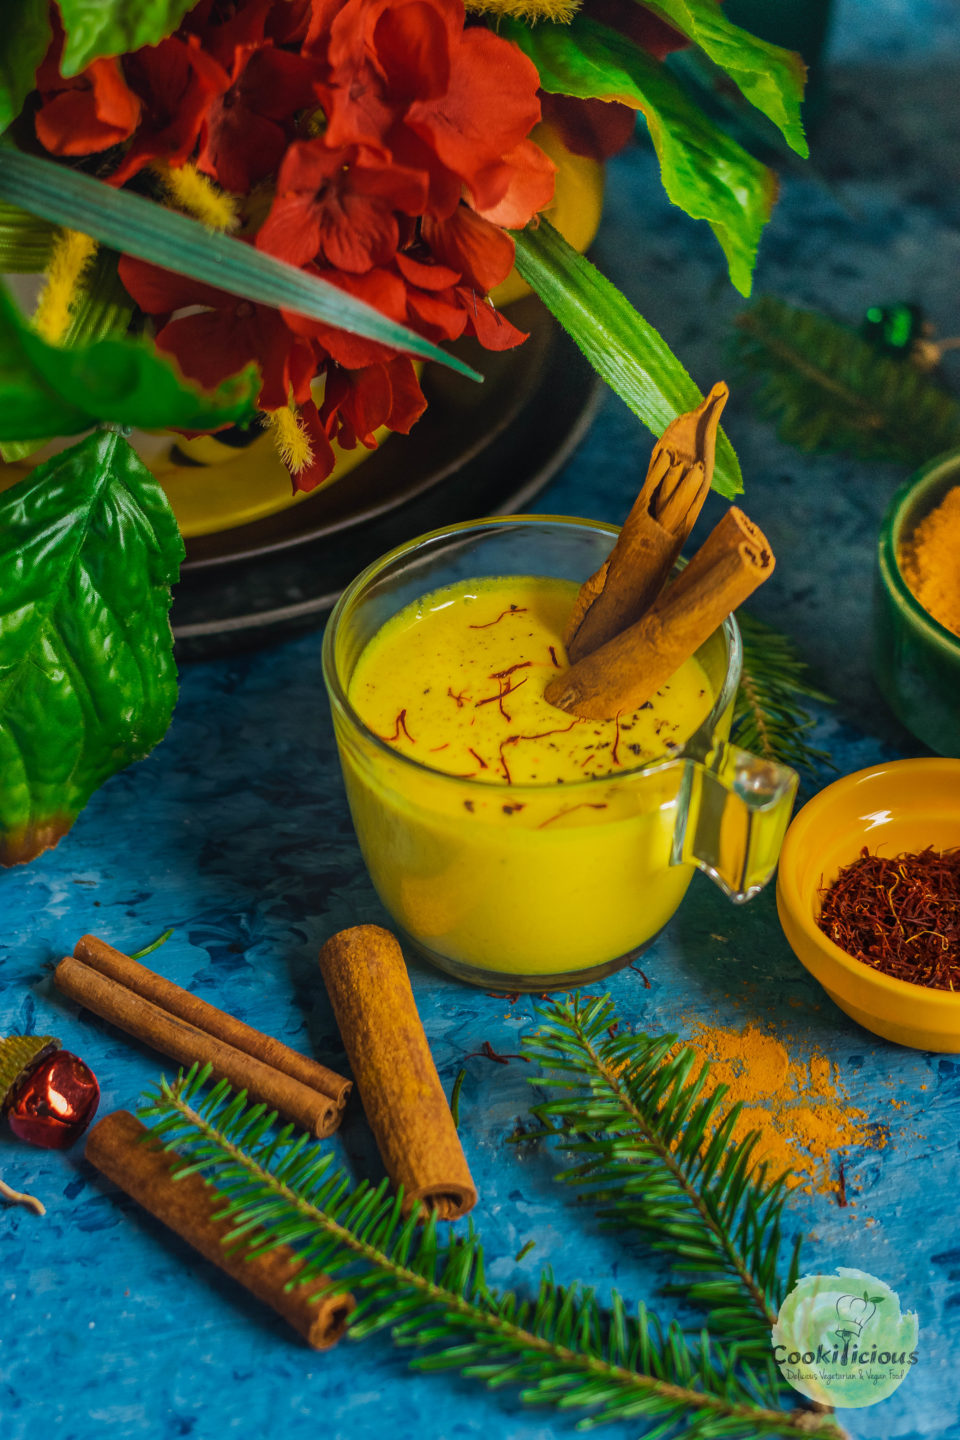 one glass filled with Iced Golden Milk and 2 cinnamon sticks in it